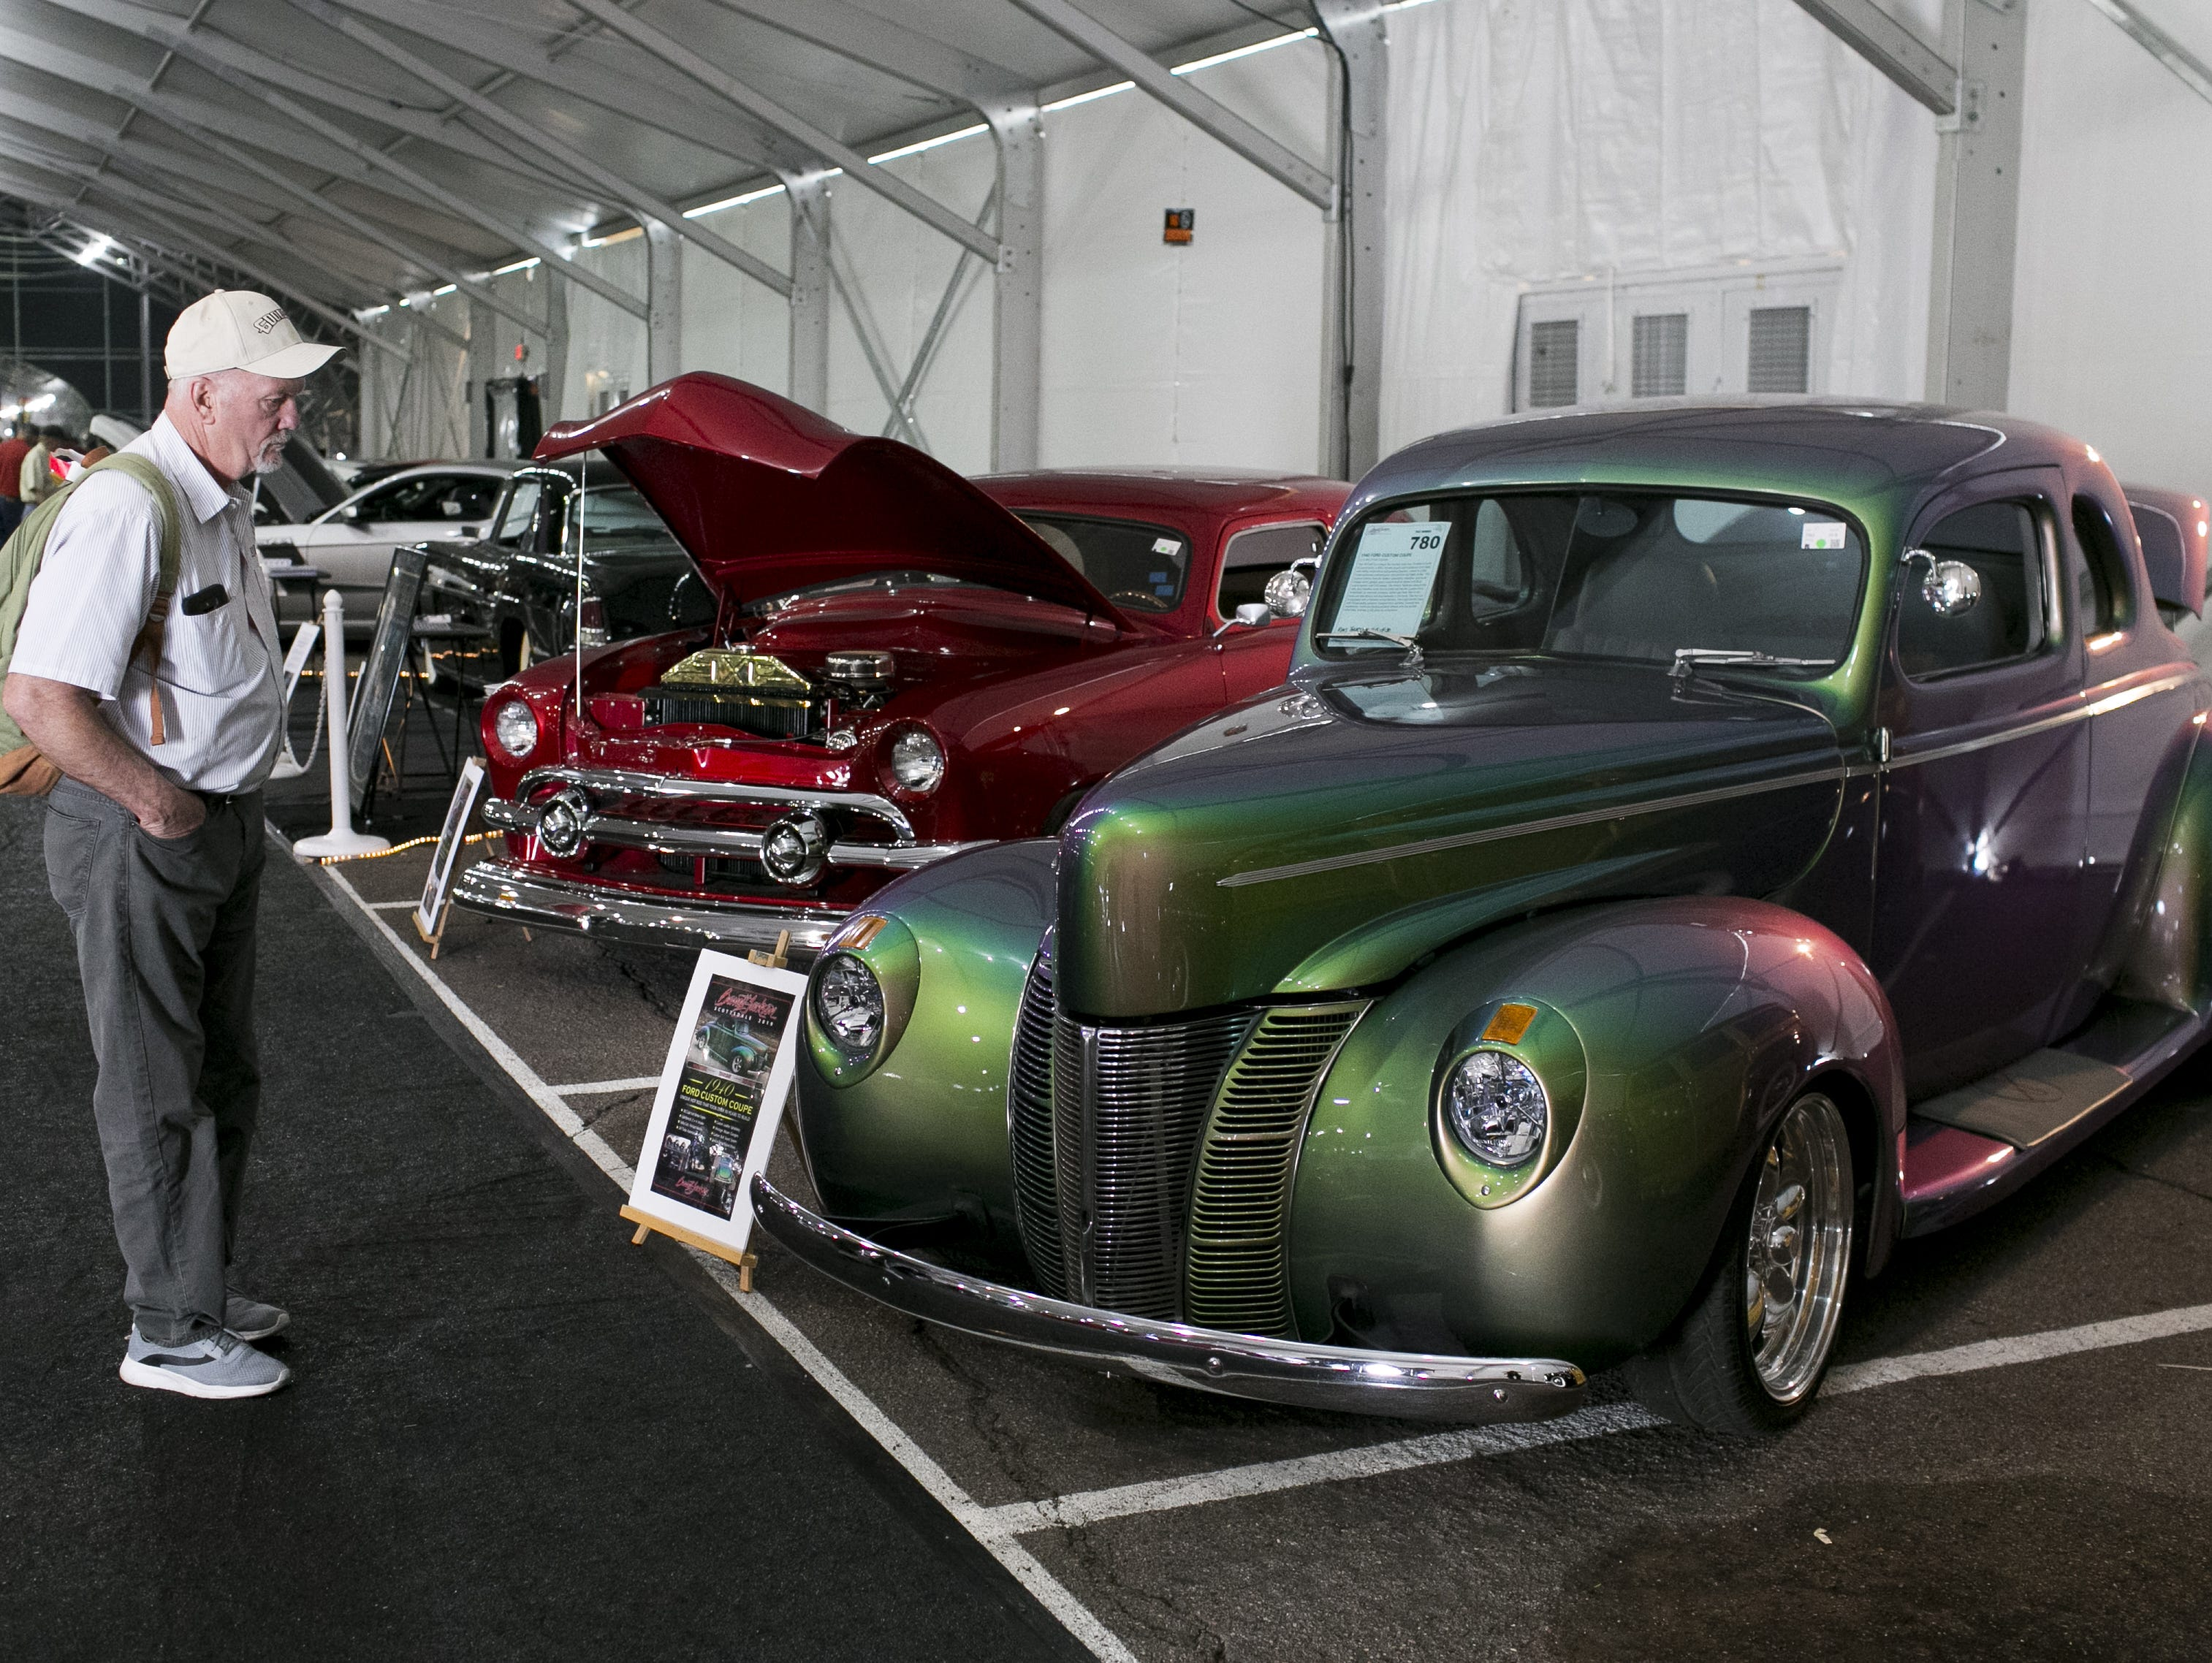 Pat McFarland (left), visiting from Tacoma, Washington, looks at a 1940 Ford Custom Coupe at the Barrett-Jackson Car Auction at WestWorld in Scottsdale, Arizona, on Jan. 16, 2019.